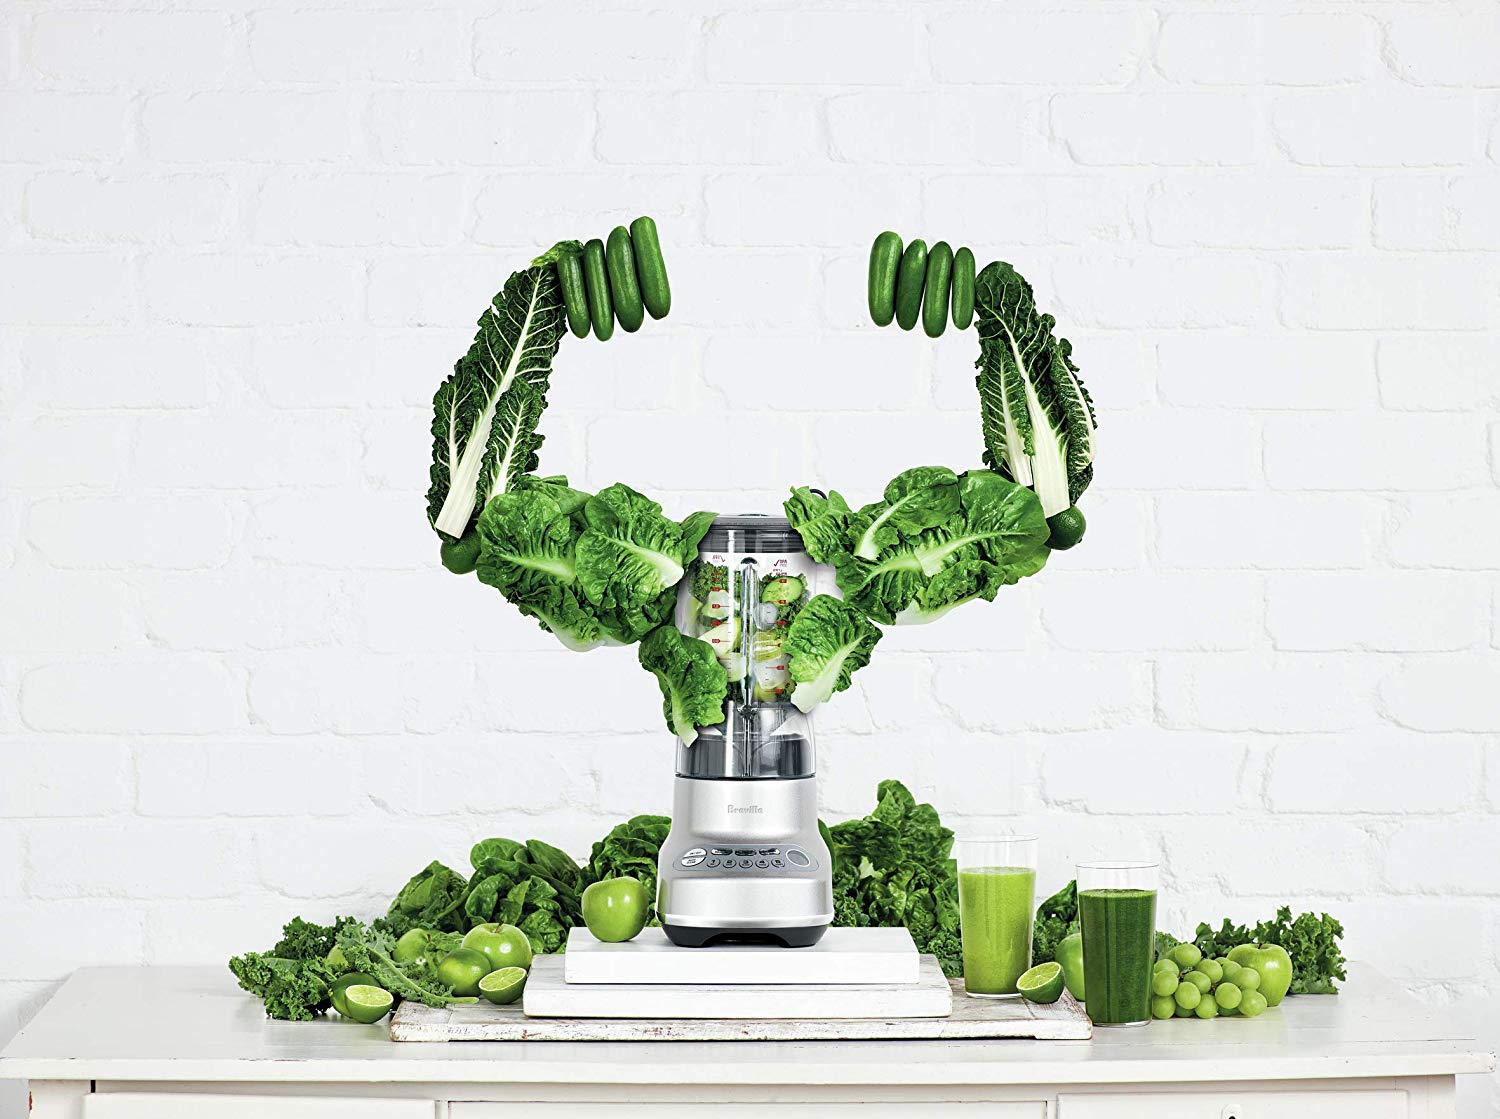 Pesto making tested the blender's ability to process leafy greens and foods of different shapes and sizes into a uniform blend that does not require a lot of liquid assistance.